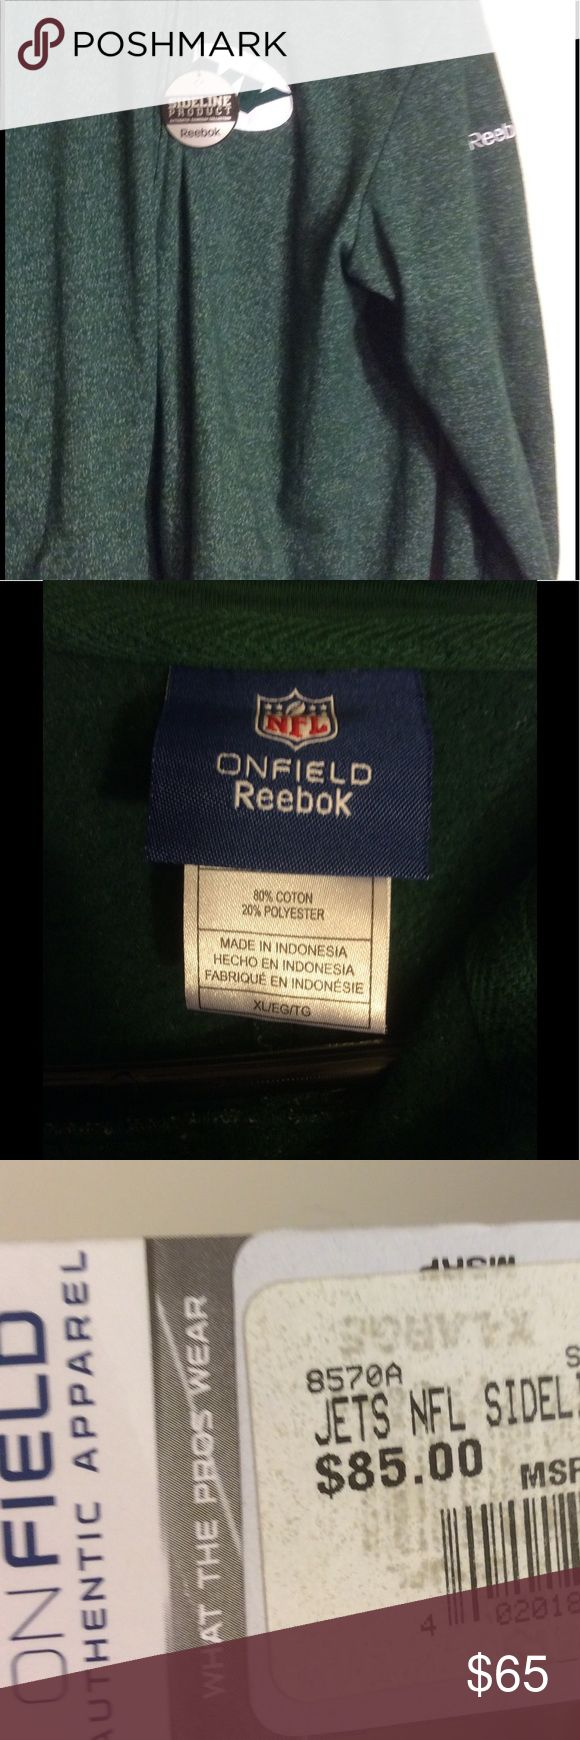 NWT NFL Jets Static Storm Hoodie XL Reebok Dear Readers, This listing is for an authentic NWT official Jets NFL Storm Static Hoodie in size XL. Please Note: it has a white mark inside the hood picture was taken, but it costs $85. It has never been worn. Great for a fan or gift. Will ship within 3 days. Reebok Sweaters